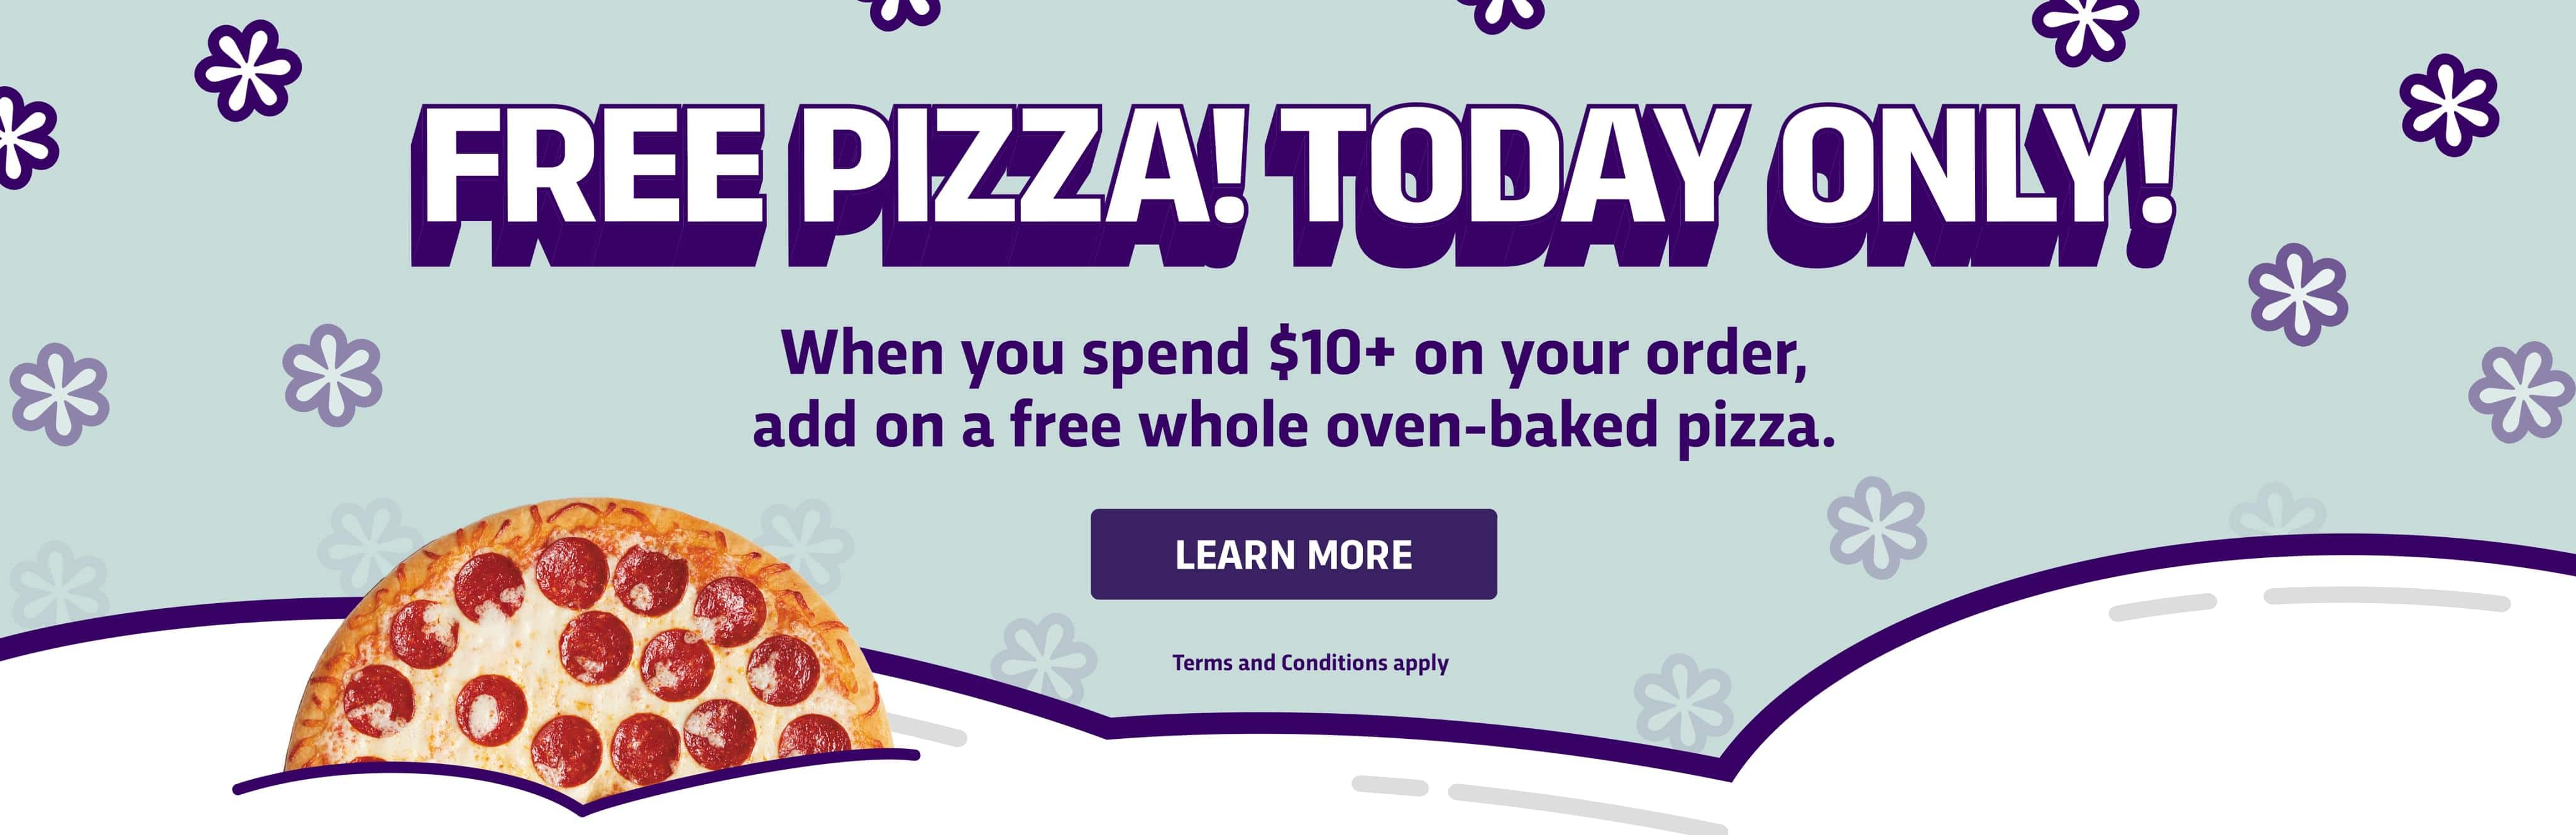 Free Pizza 7-11NOW App Mistake (Plus $1.99 Delivery Fee)